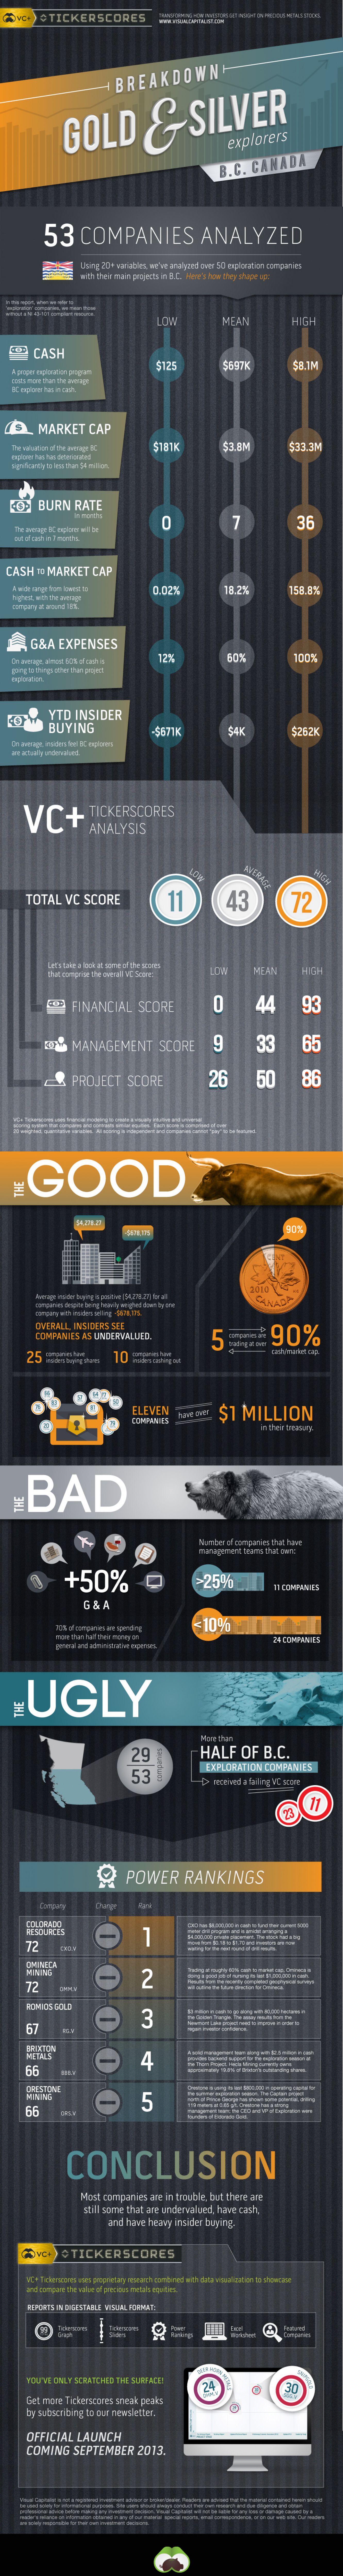 Breakdown: Gold and Silver Exploration Stocks in BC, Canada Infographic